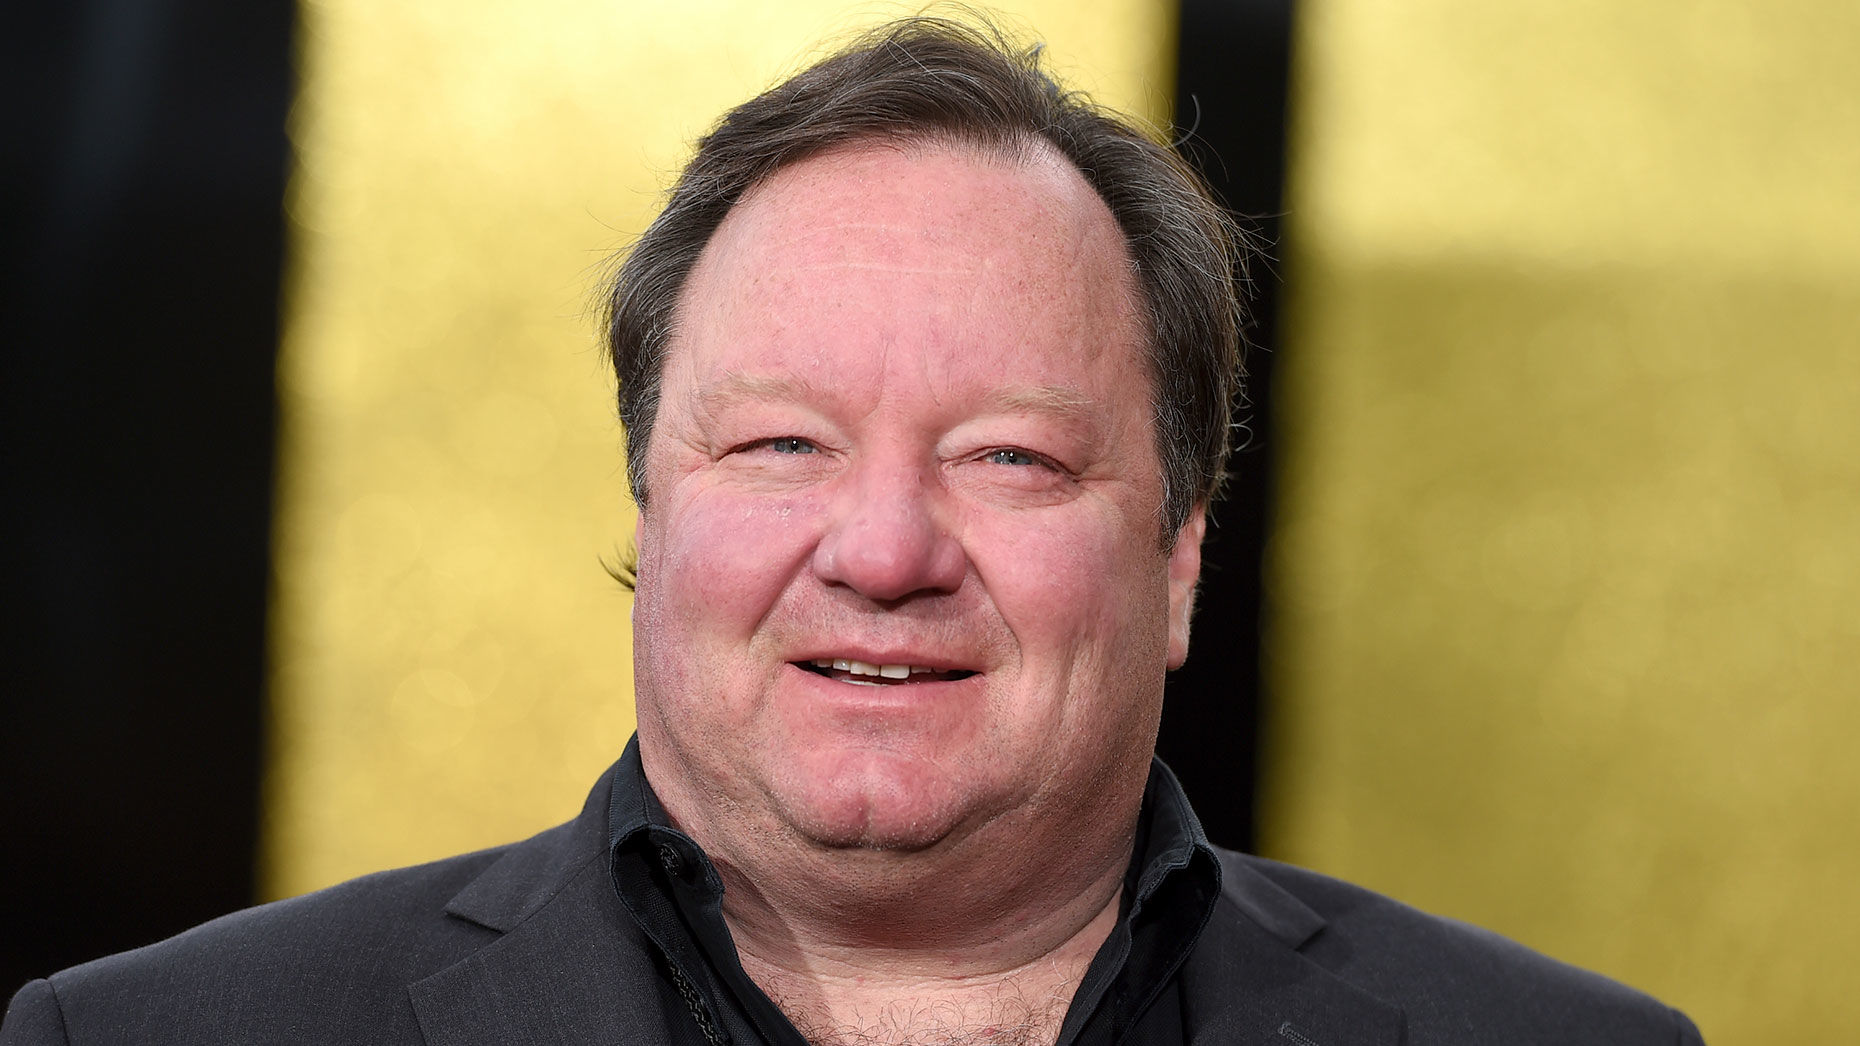 Viacom CEO Bob Bakish. Photo by AP